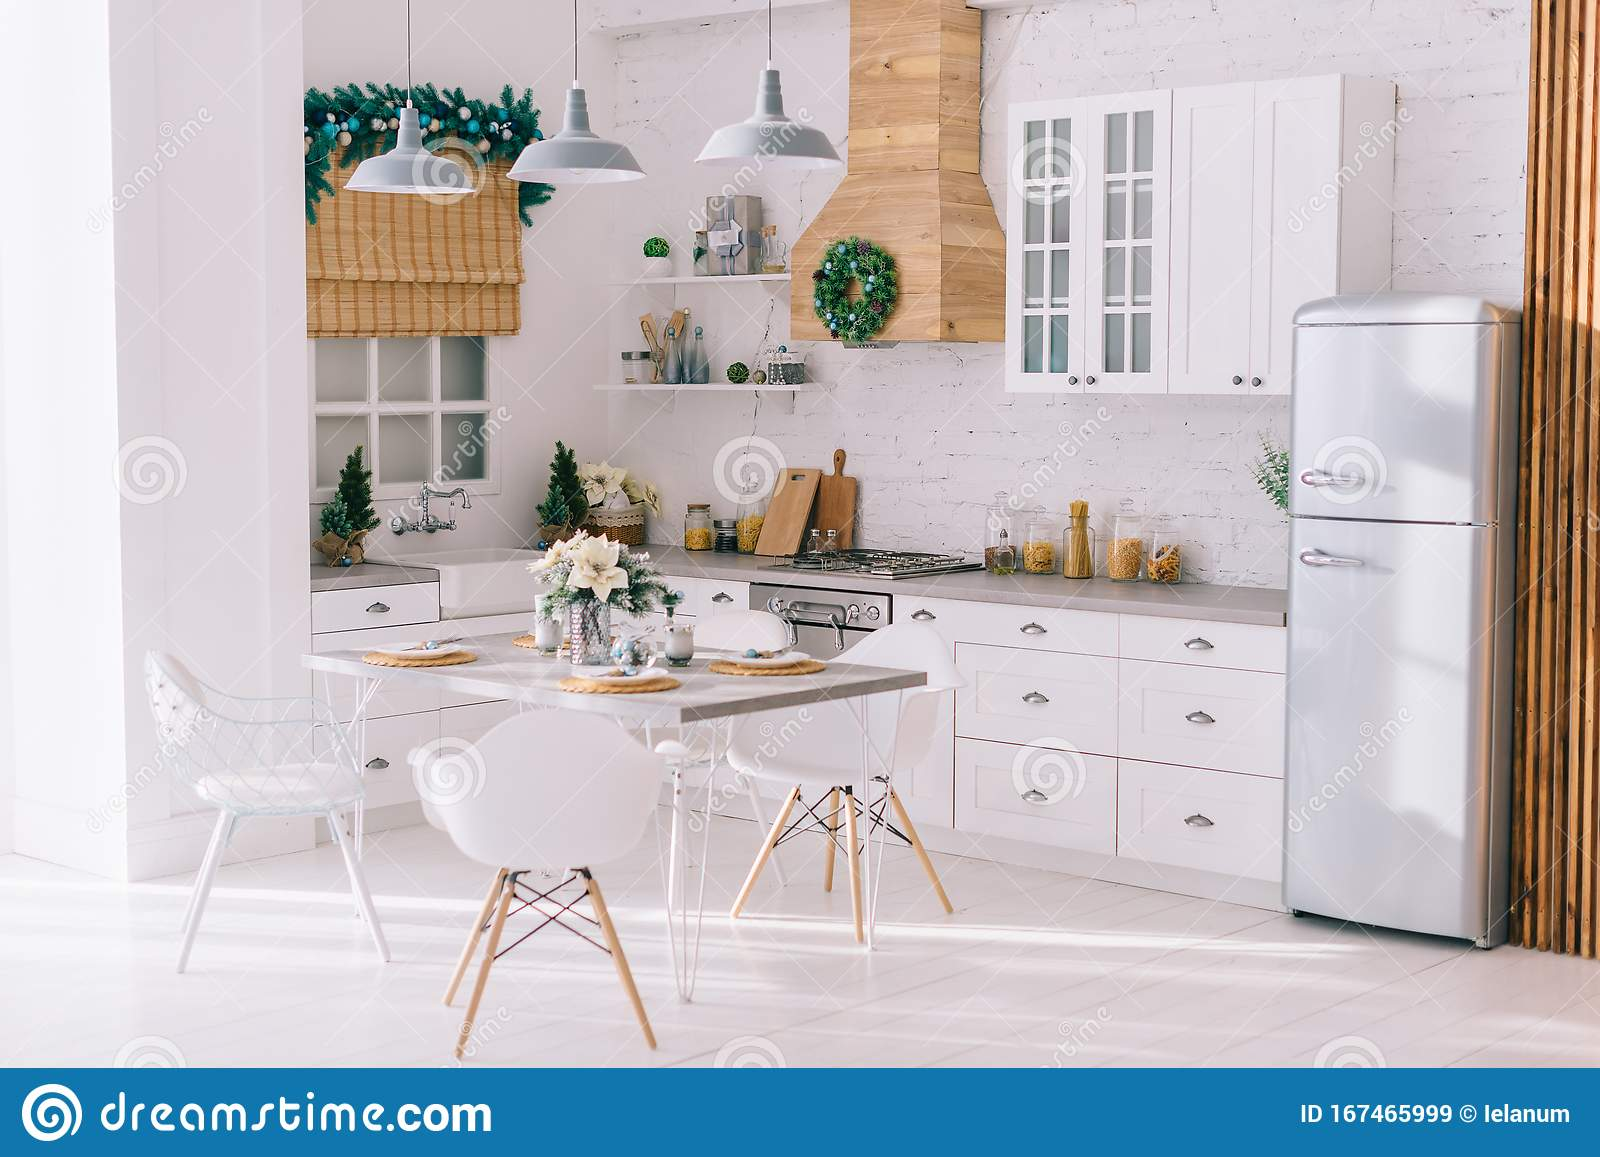 Interior Of A Bright Modern Kitchen In Vintage Style Decorated With Christmas Decor Stock Image Image Of Modern Design 167465999